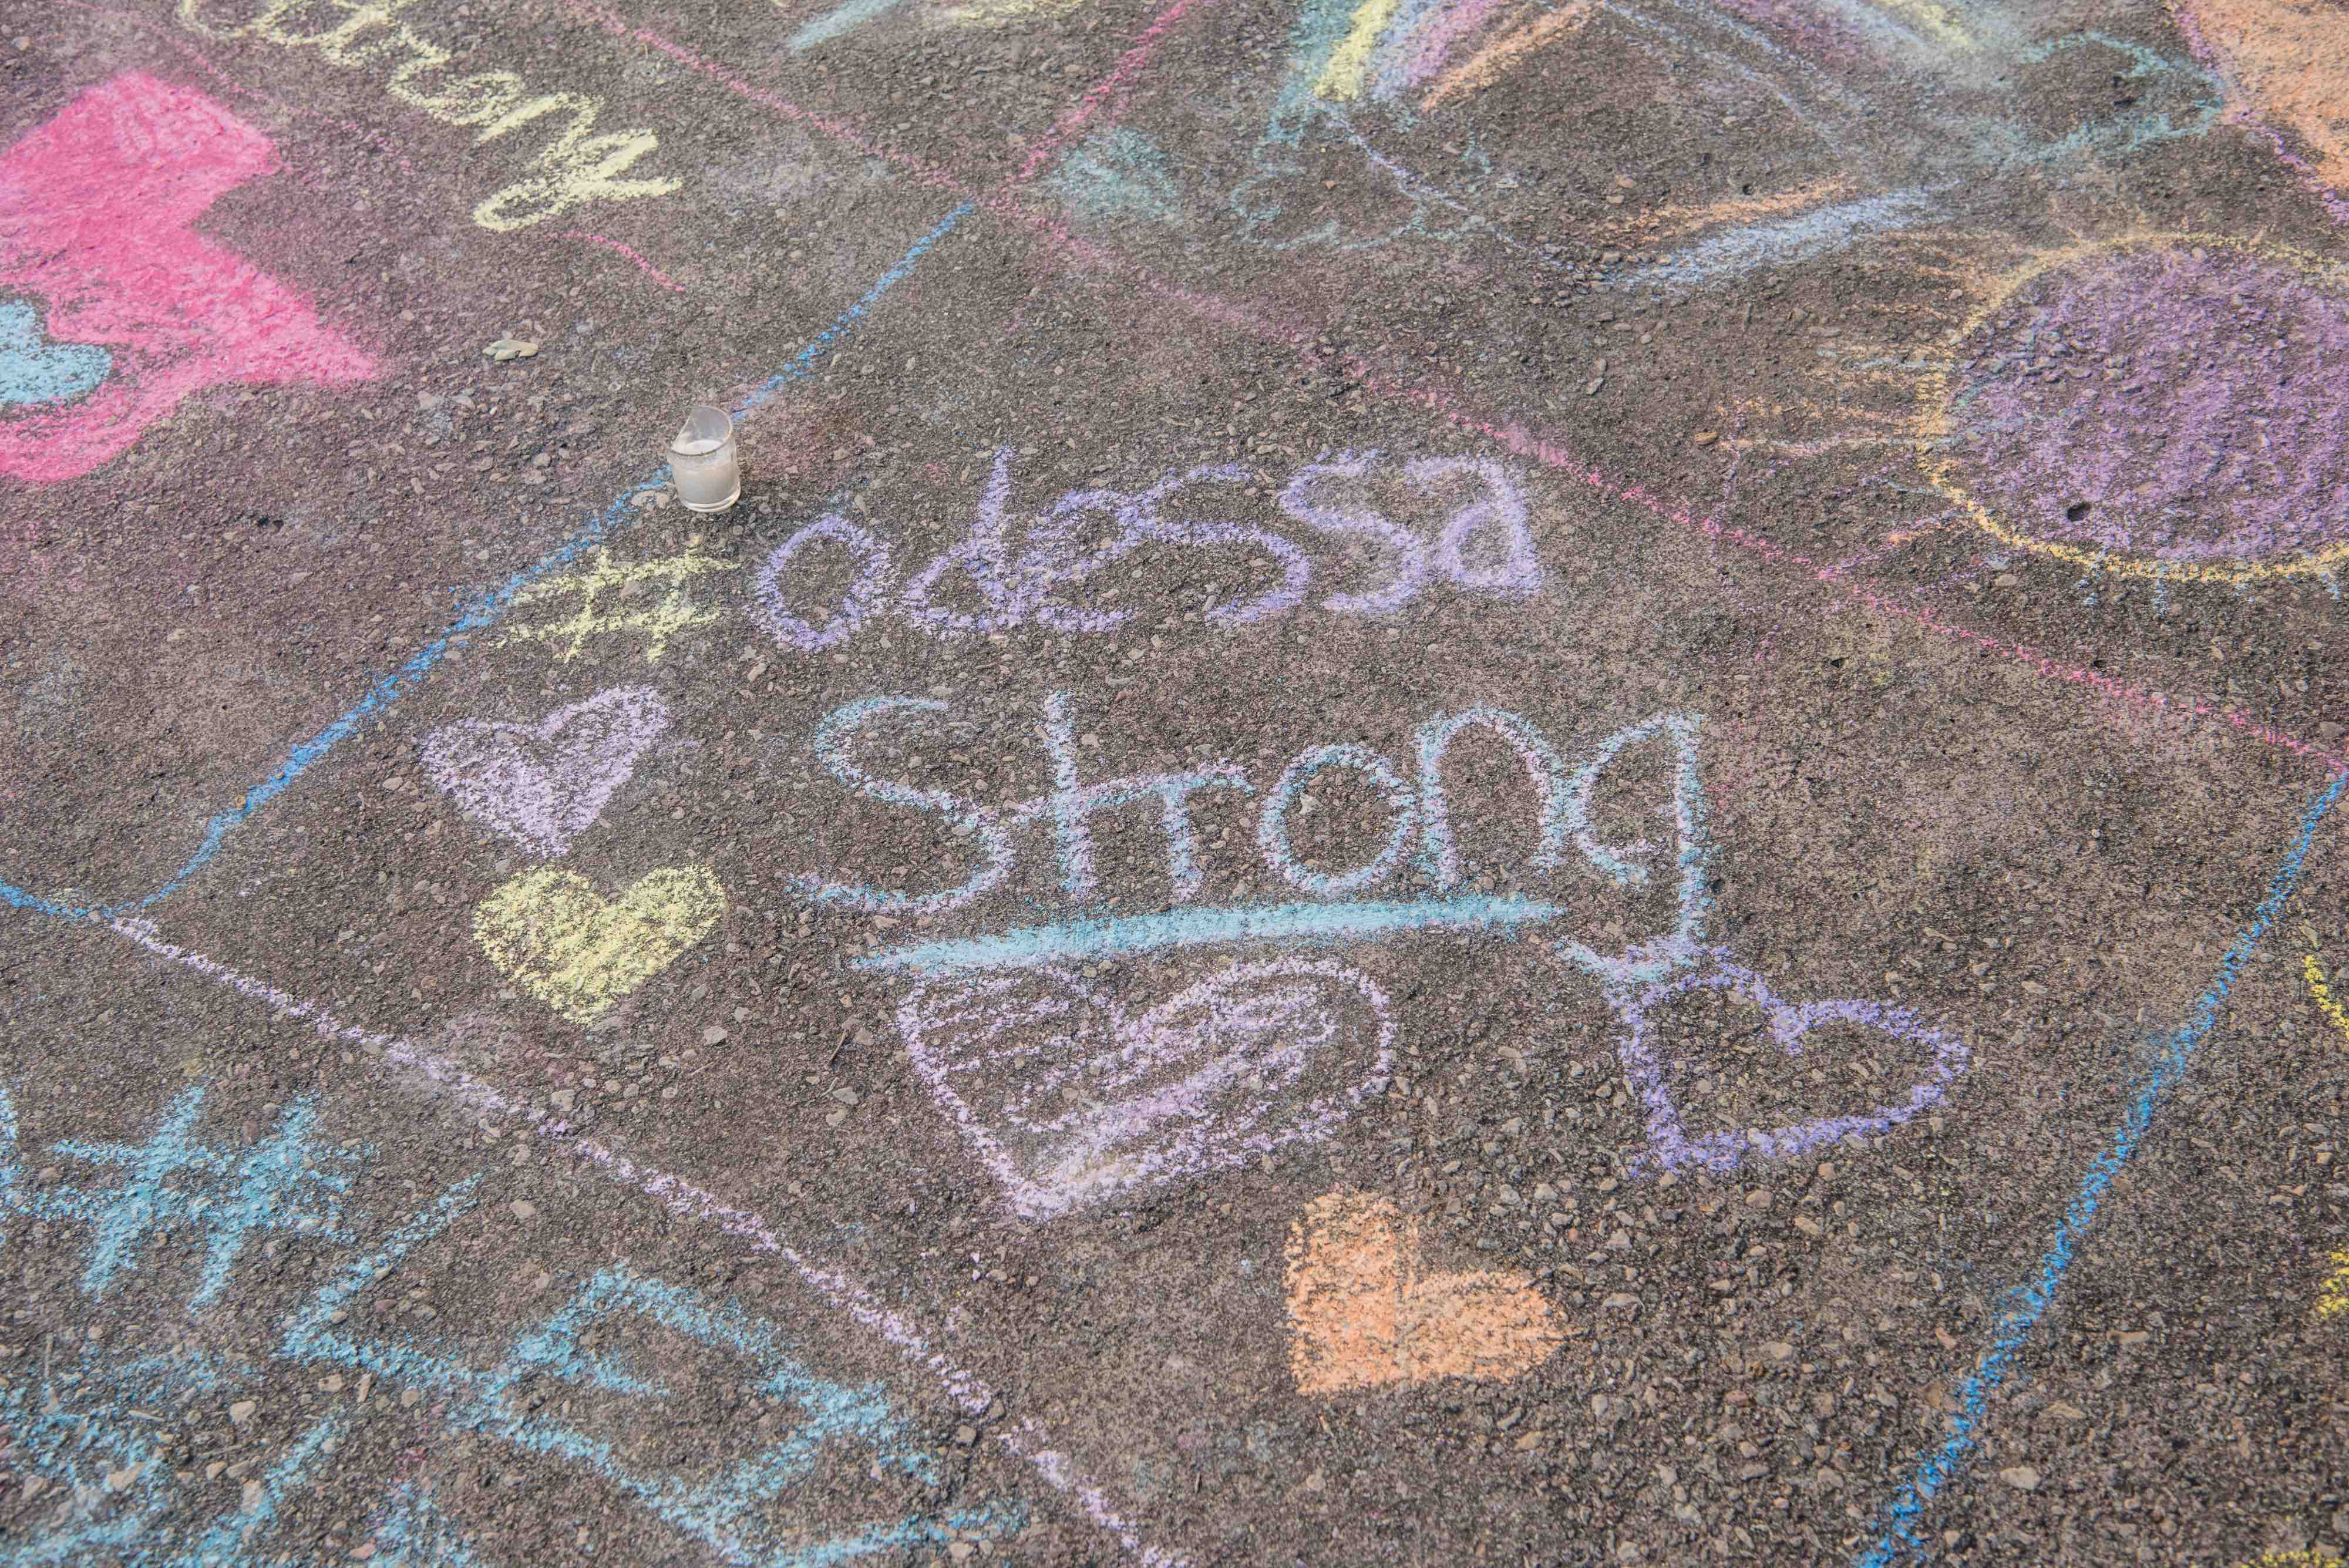 The Internet Has Raised More than $20K for Leilah Hernandez, 15-Year-Old Killed in Odessa Shooting